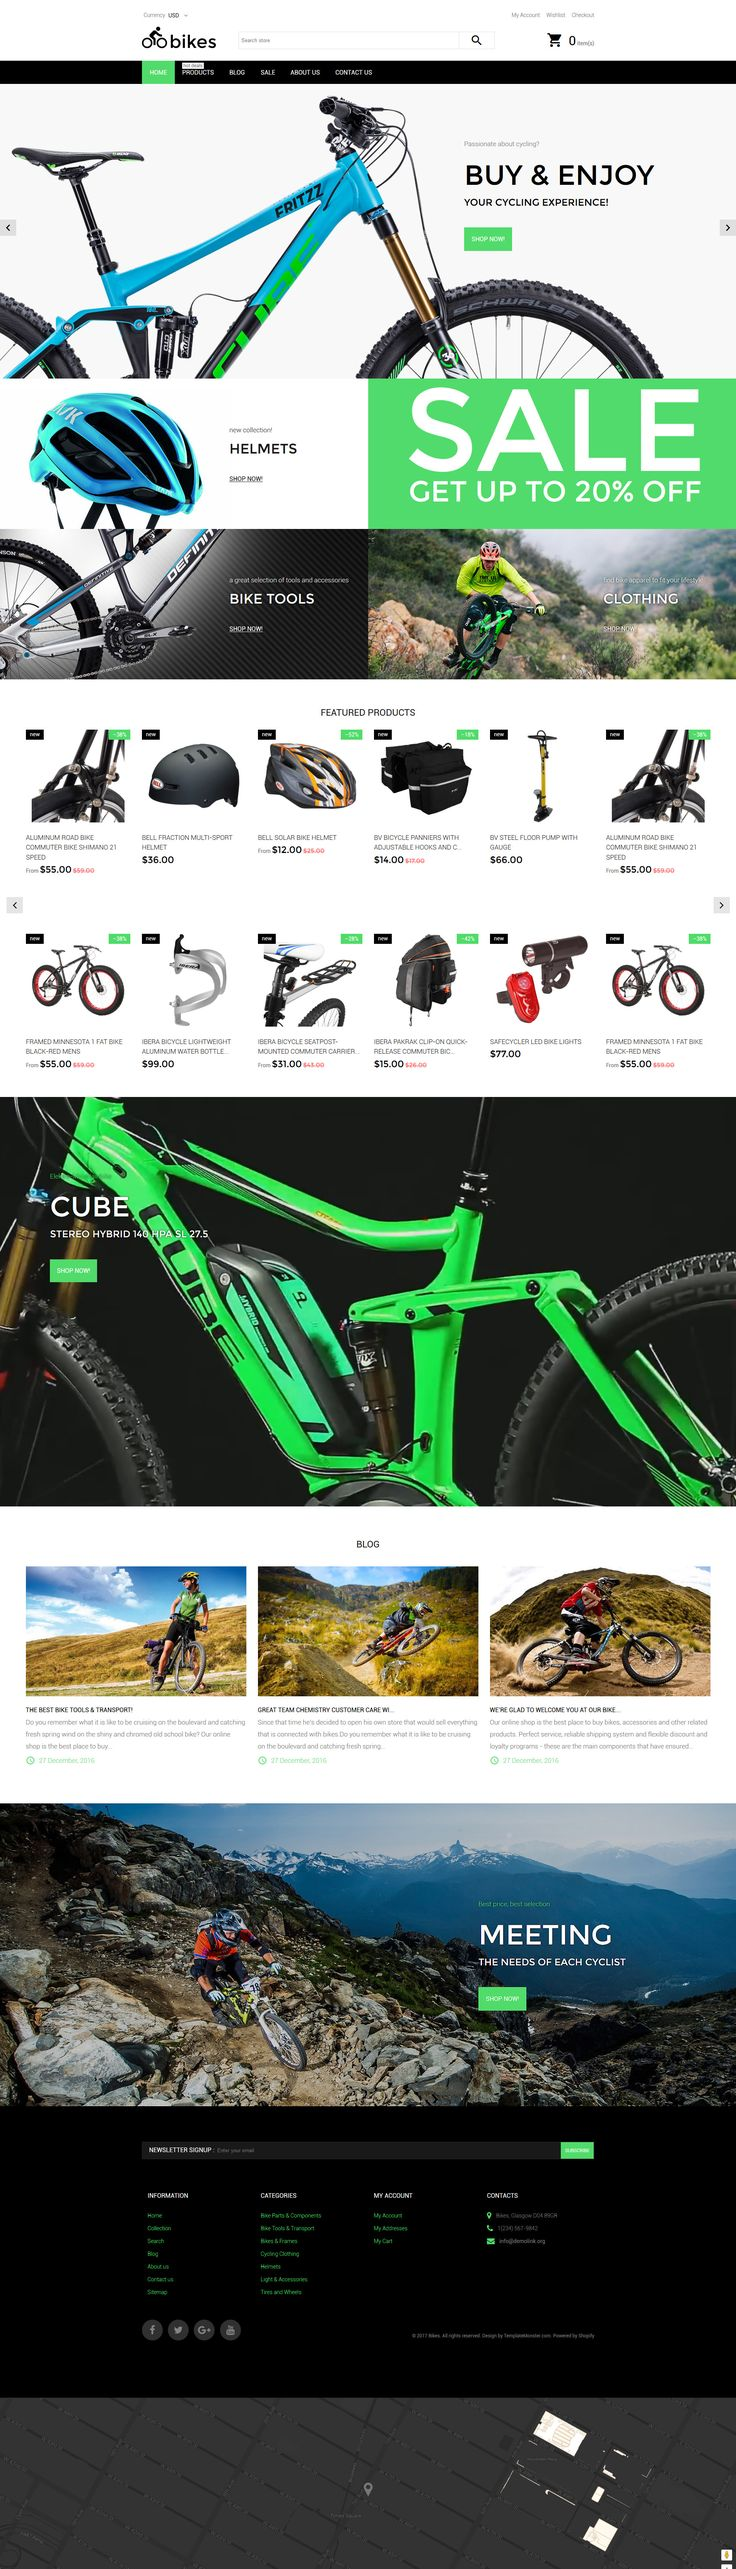 Bike Shop Responsive Shopify Theme #62167 - https://www.templatemonster.com/shopify-themes/bike-shop-responsive-shopify-theme-62167.html